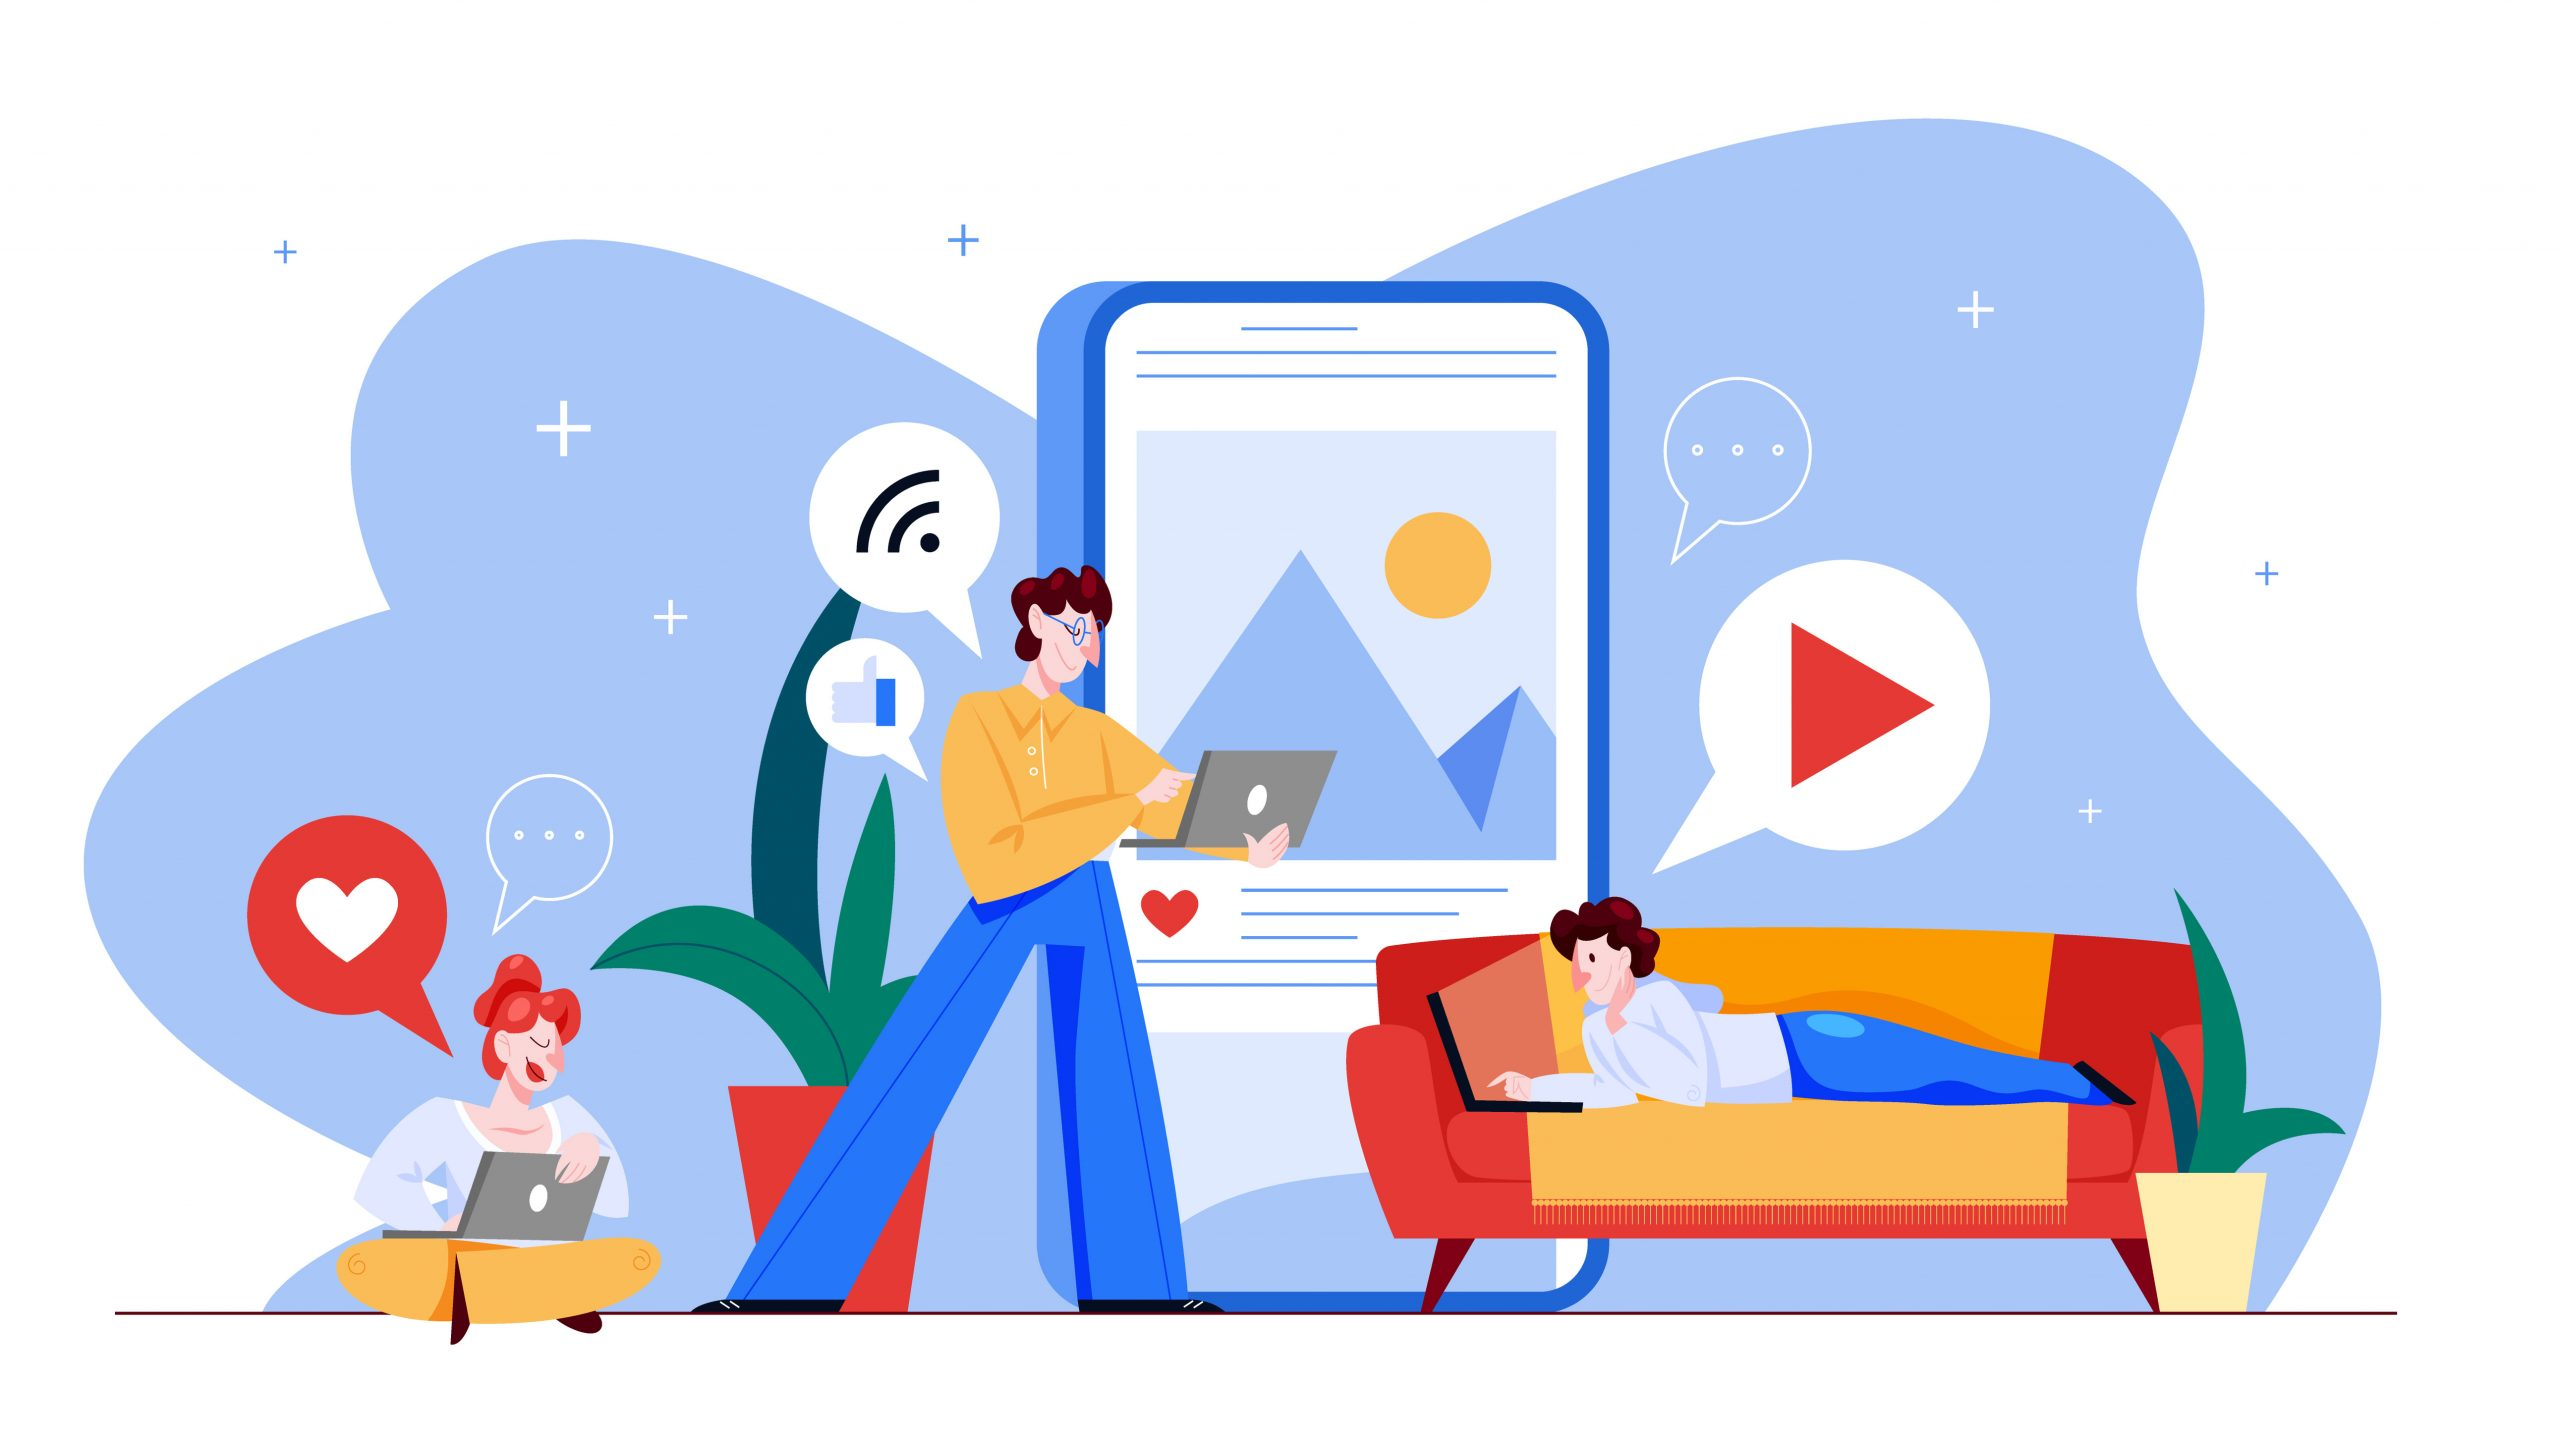 Social media concept. Global communication, sharing content and getting feedback. Using networks for business promotion. Marketing strategy. Vector illustration in cartoon style